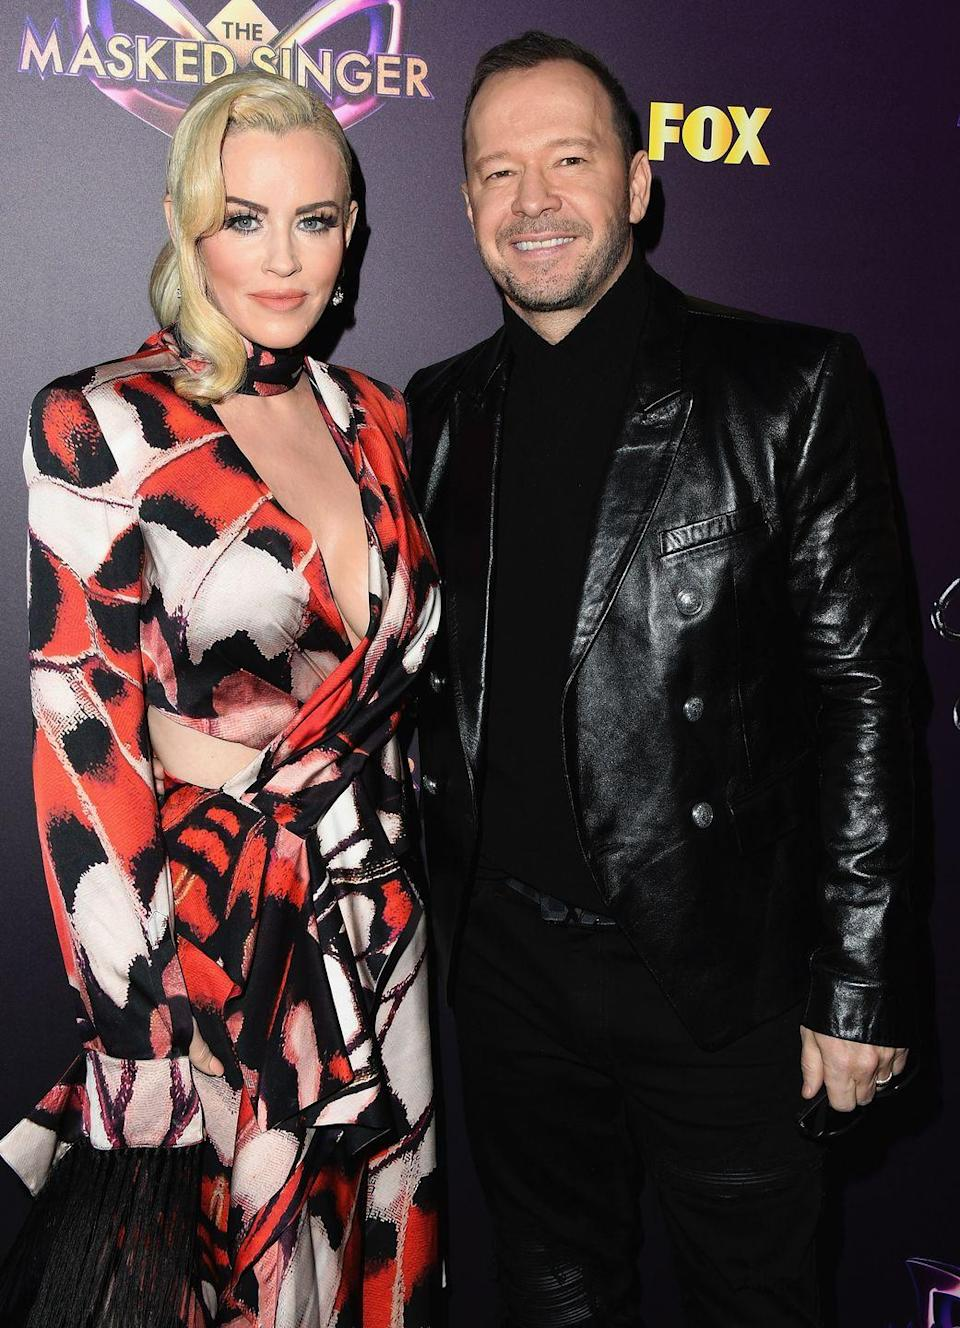 """<p>Years later, McCarthy met Wahlberg, who she married in 2014. They recently celebrated their fifth anniversary, but McCarthy told <em><a href=""""https://www.eonline.com/news/964032/inside-jenny-mccarthy-and-donnie-wahlberg-s-entirely-unexpected-love-story"""" rel=""""nofollow noopener"""" target=""""_blank"""" data-ylk=""""slk:E! News"""" class=""""link rapid-noclick-resp"""">E! News</a> </em>that they both feel like their love is still """"brand new.""""</p>"""